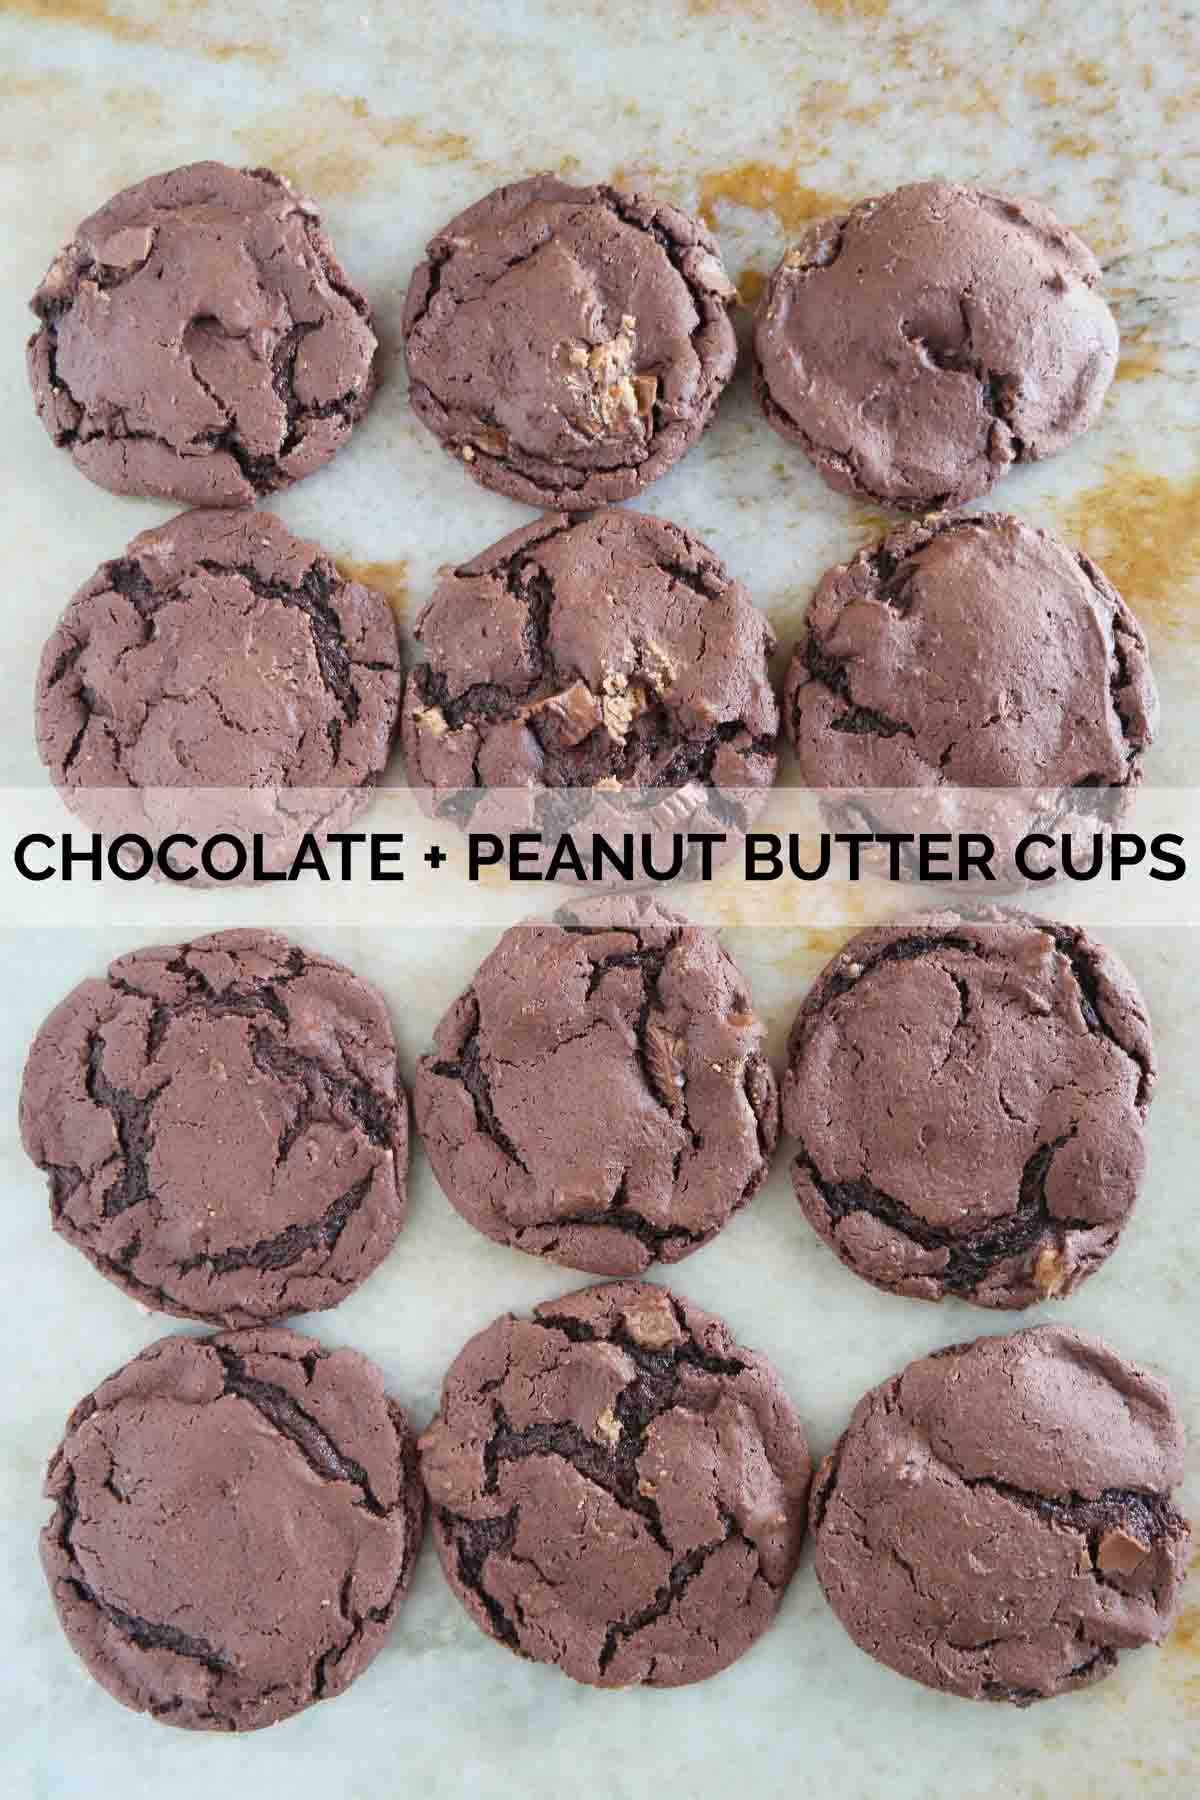 Cake mix cookies made from chocolate cake mix and peanut butter cups